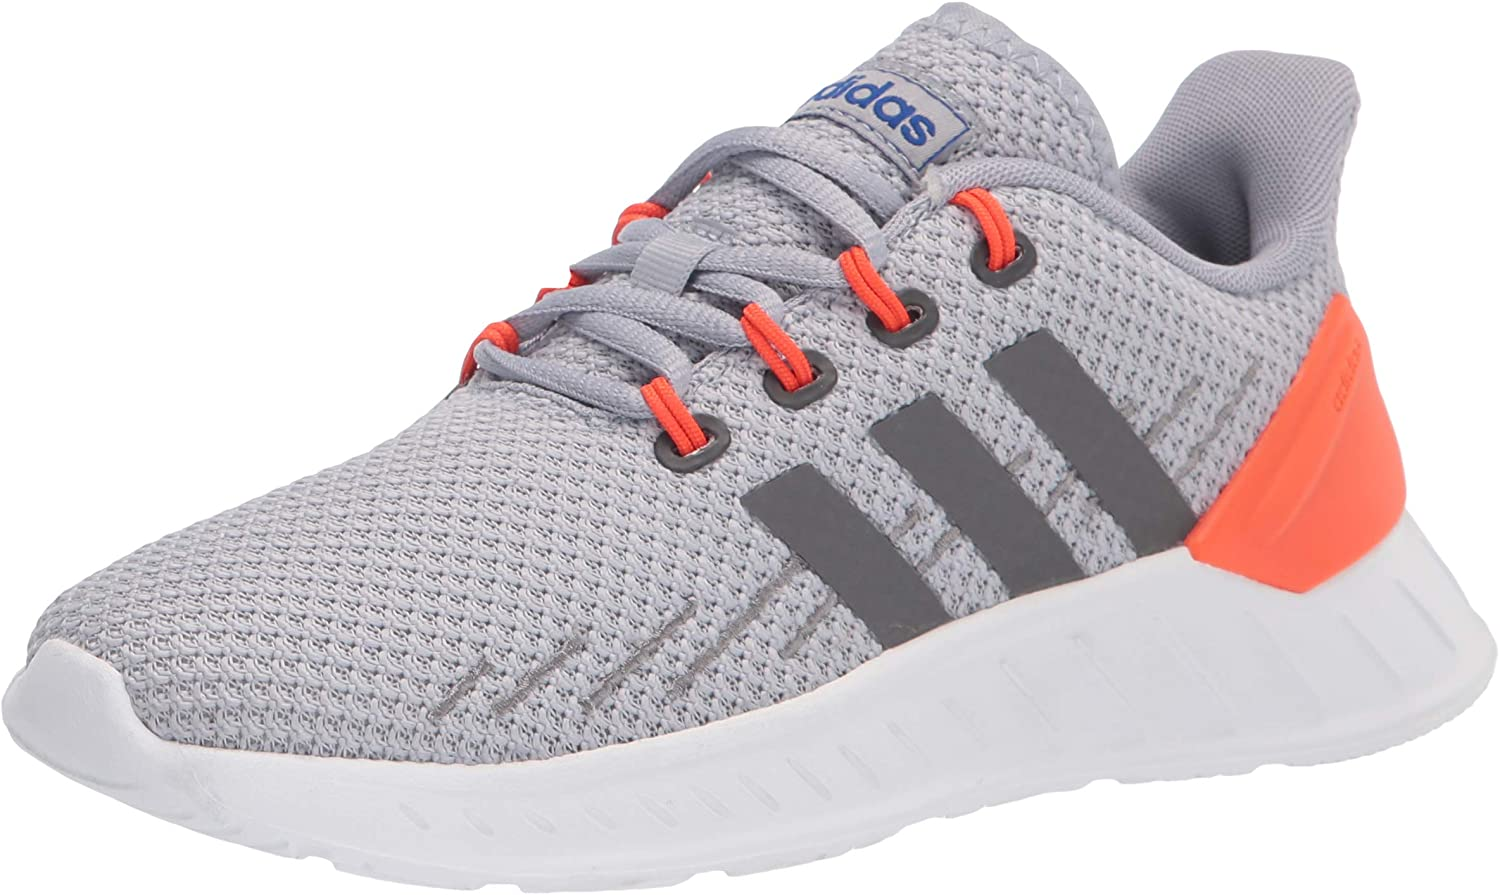 adidas Unisex-Child Questar Max High quality new 65% OFF Flow Nxt Running Shoe